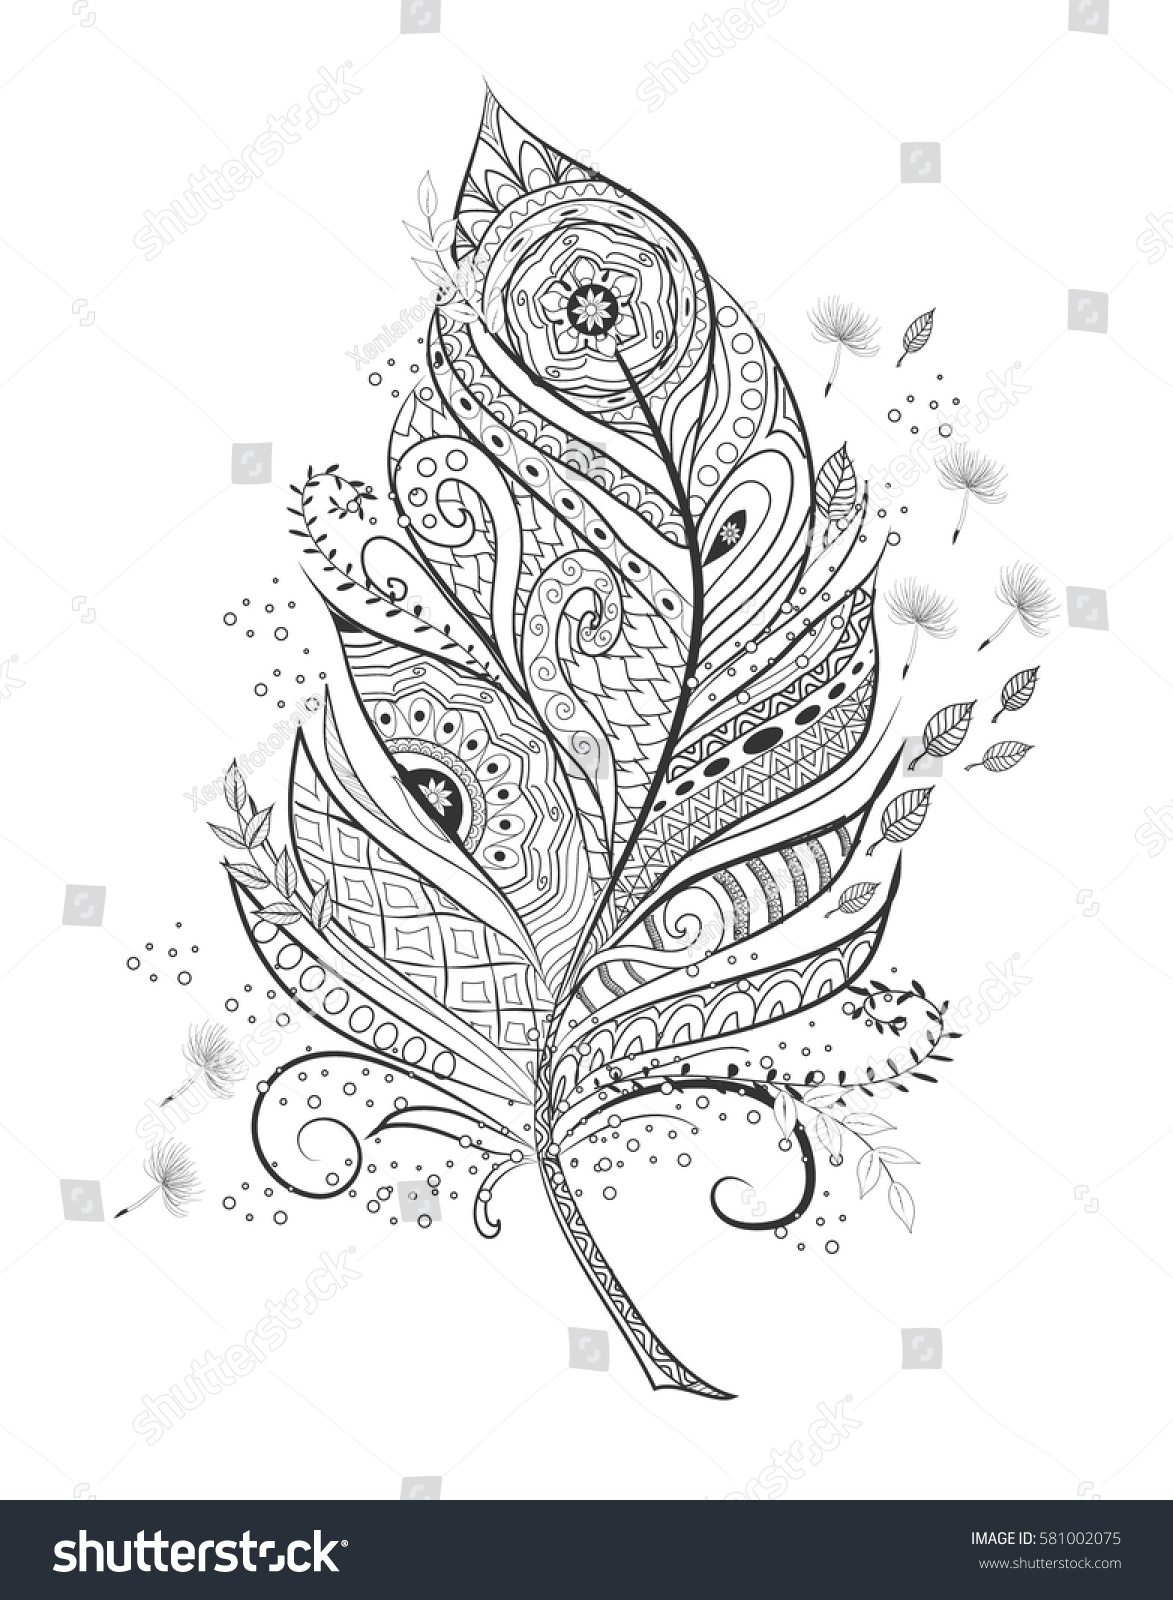 Zentangle Stylized Feather Coloring Page Hand Stock Vector Royalty